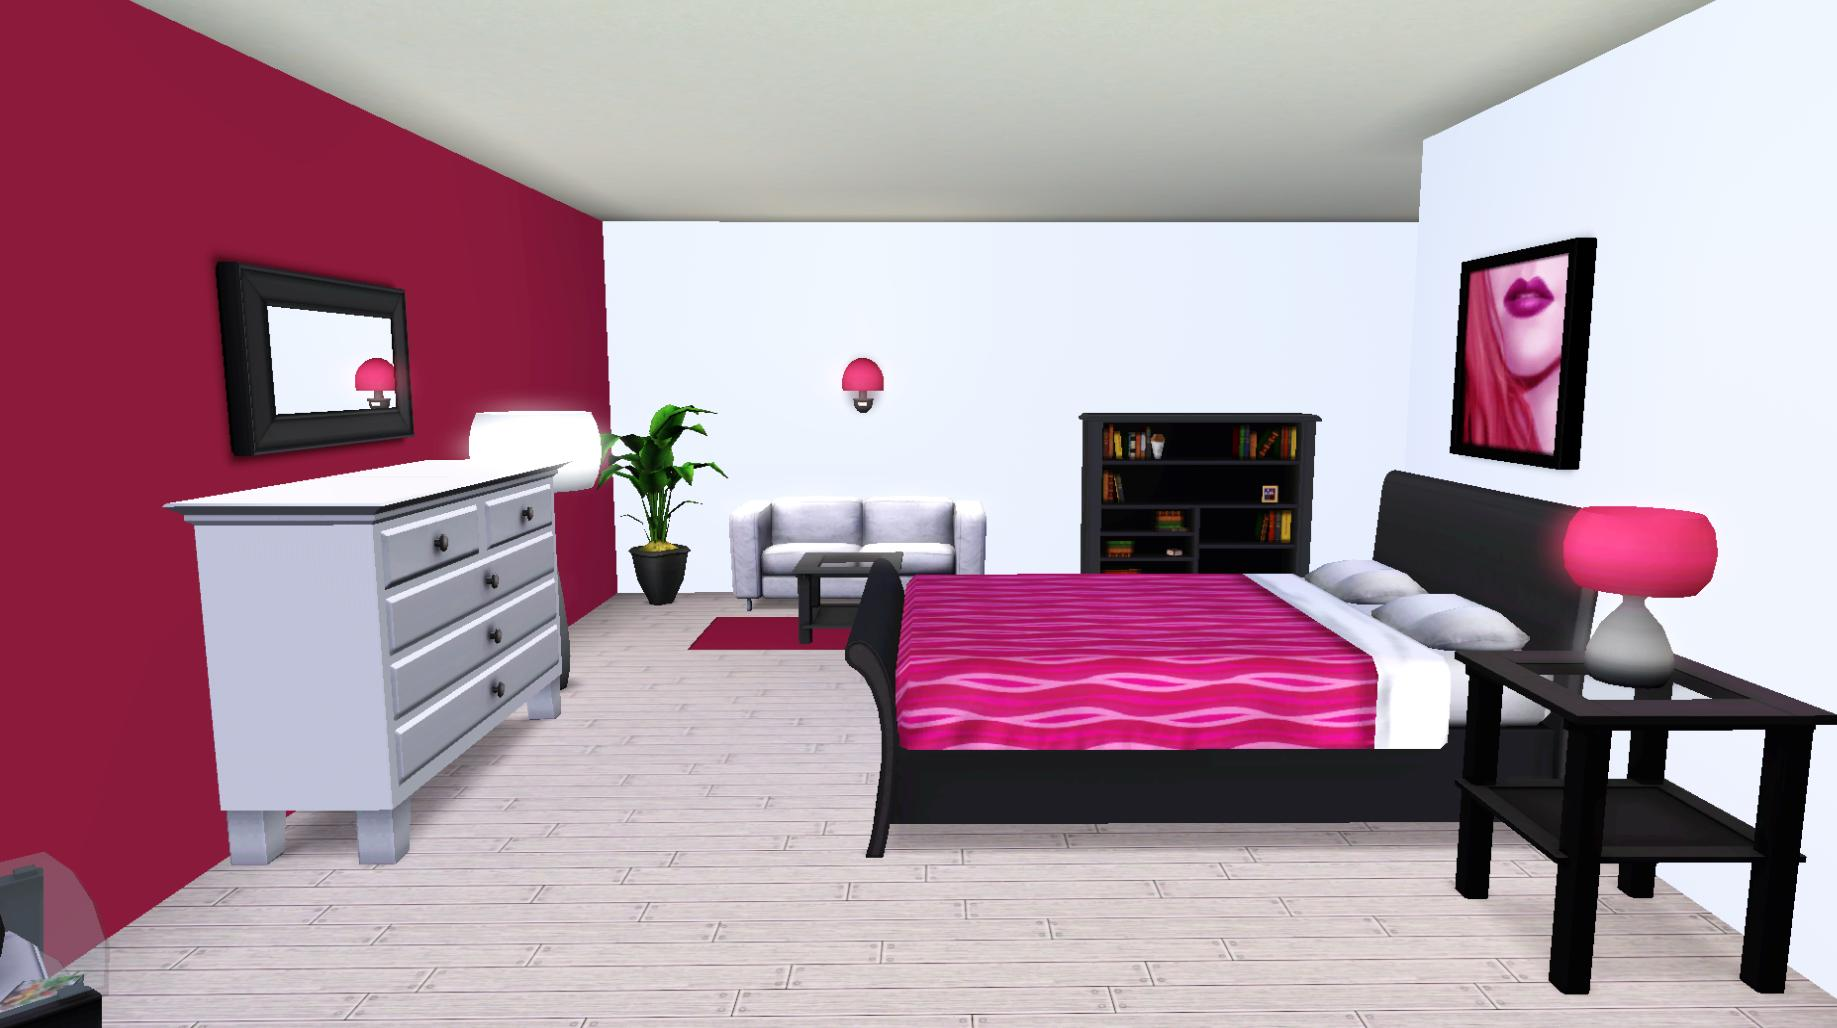 Mod the sims tiny tango 10x10 starter basegame no cc for 10x10 master bedroom